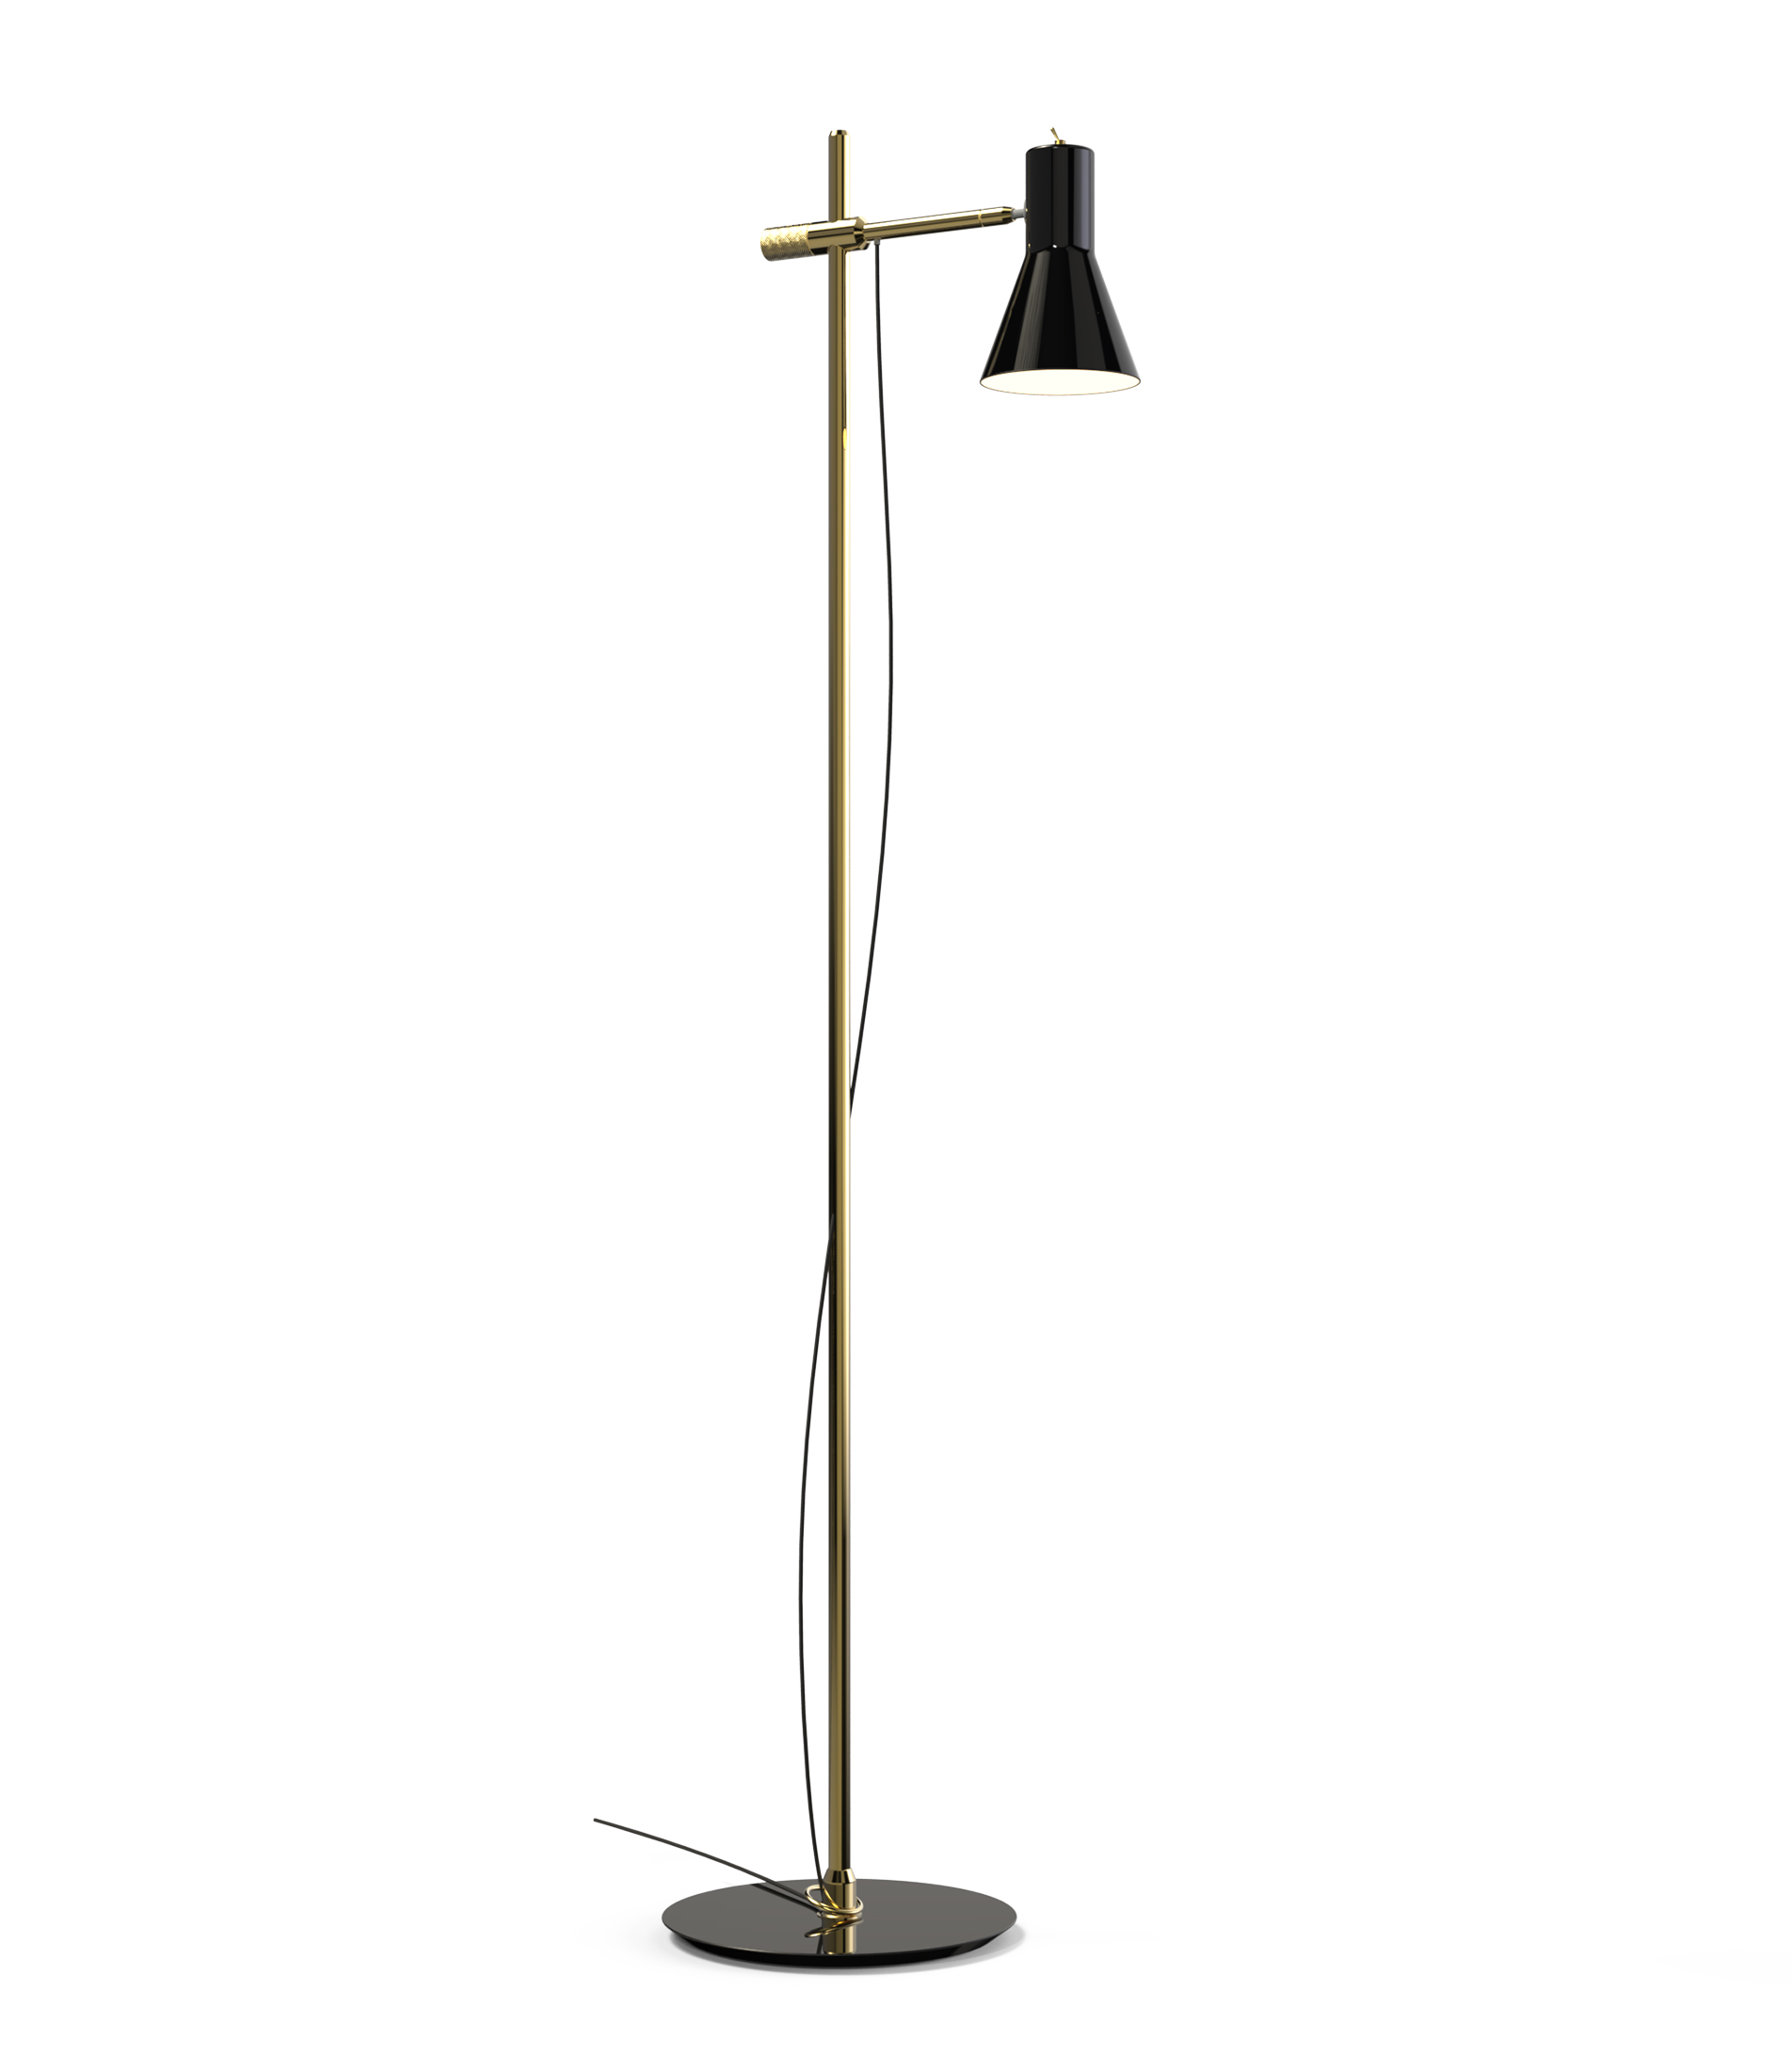 coleman floor lamp Celebrate Coleman Hawkin's Birthday With Coleman Floor Lamp Celebrate Coleman Hawkins Birthday With Coleman Floor Lamp 4